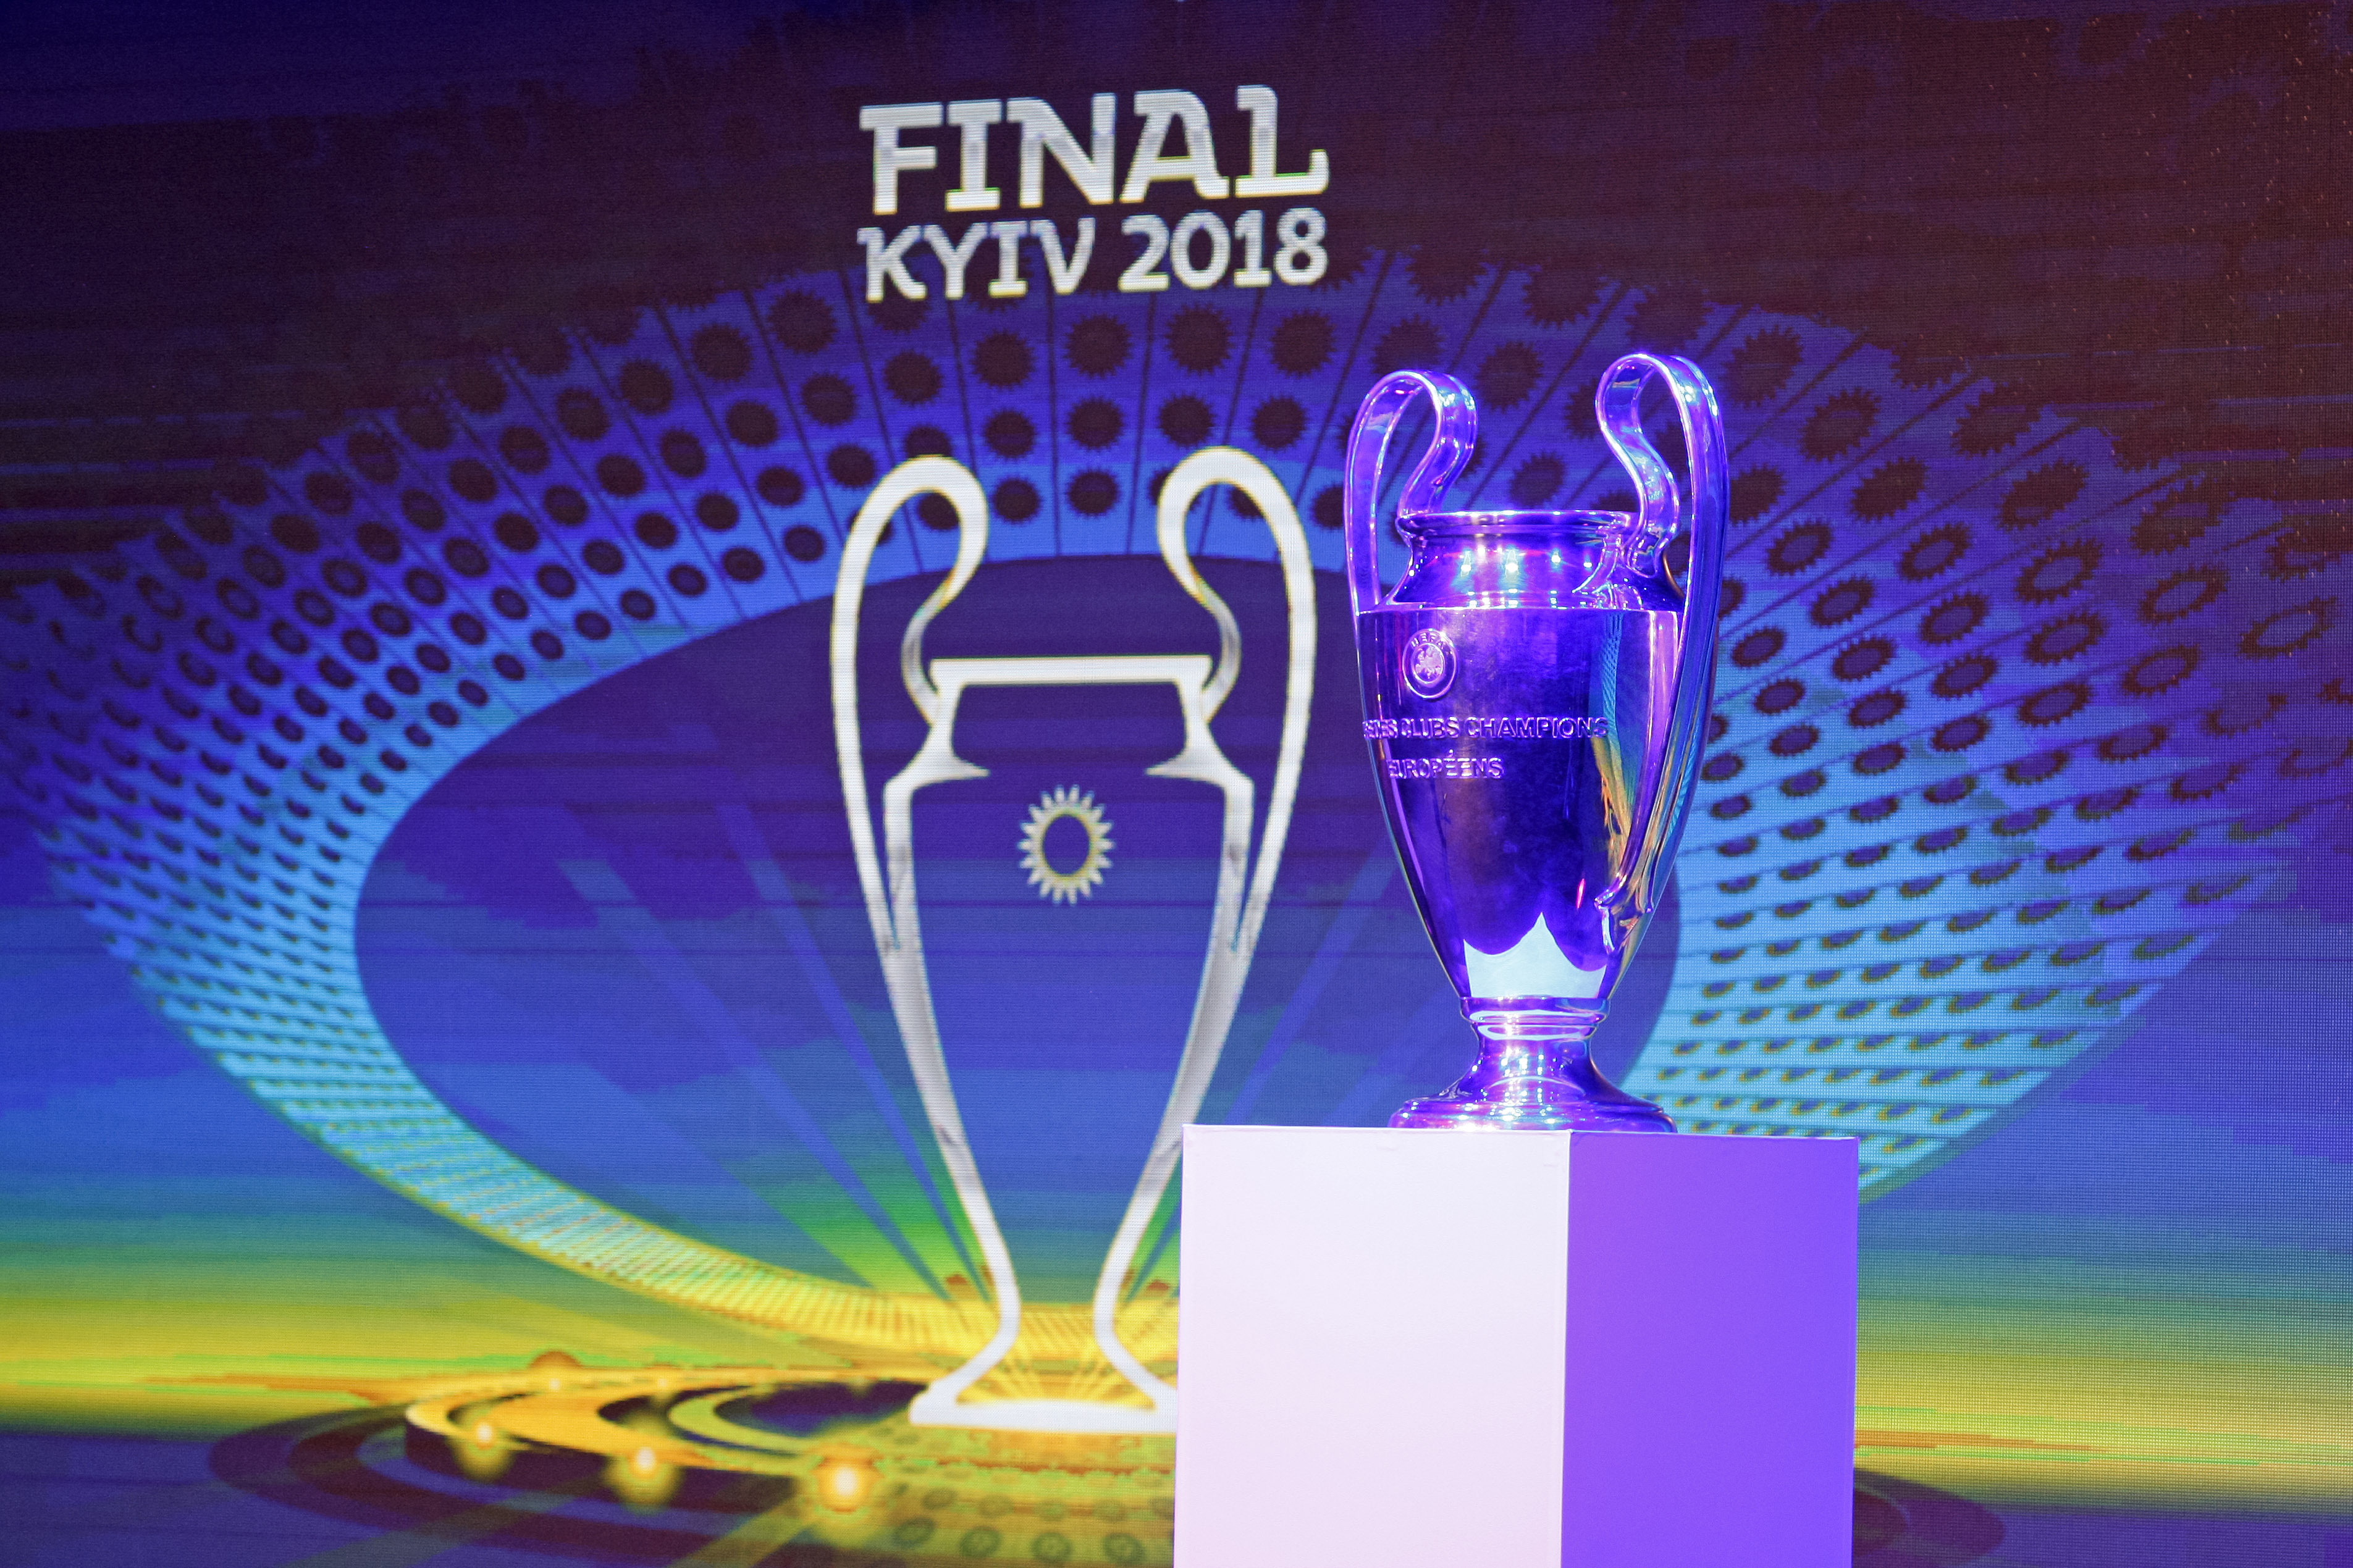 December 12, 2017 - Kiev, Ukraine - The Champions League trophy and the logo of the 2018 UEFA Champions League final on display, during the presentation of the logo of the 2018 UEFA Champions League final in Kiev, Ukraine, on 12 December 2017. The UEFA Champions League final will be played at the Olimpiyskiy stadium in Kiev on 26 May 2018. (Credit Image: © Serg Glovny via ZUMA Wire)